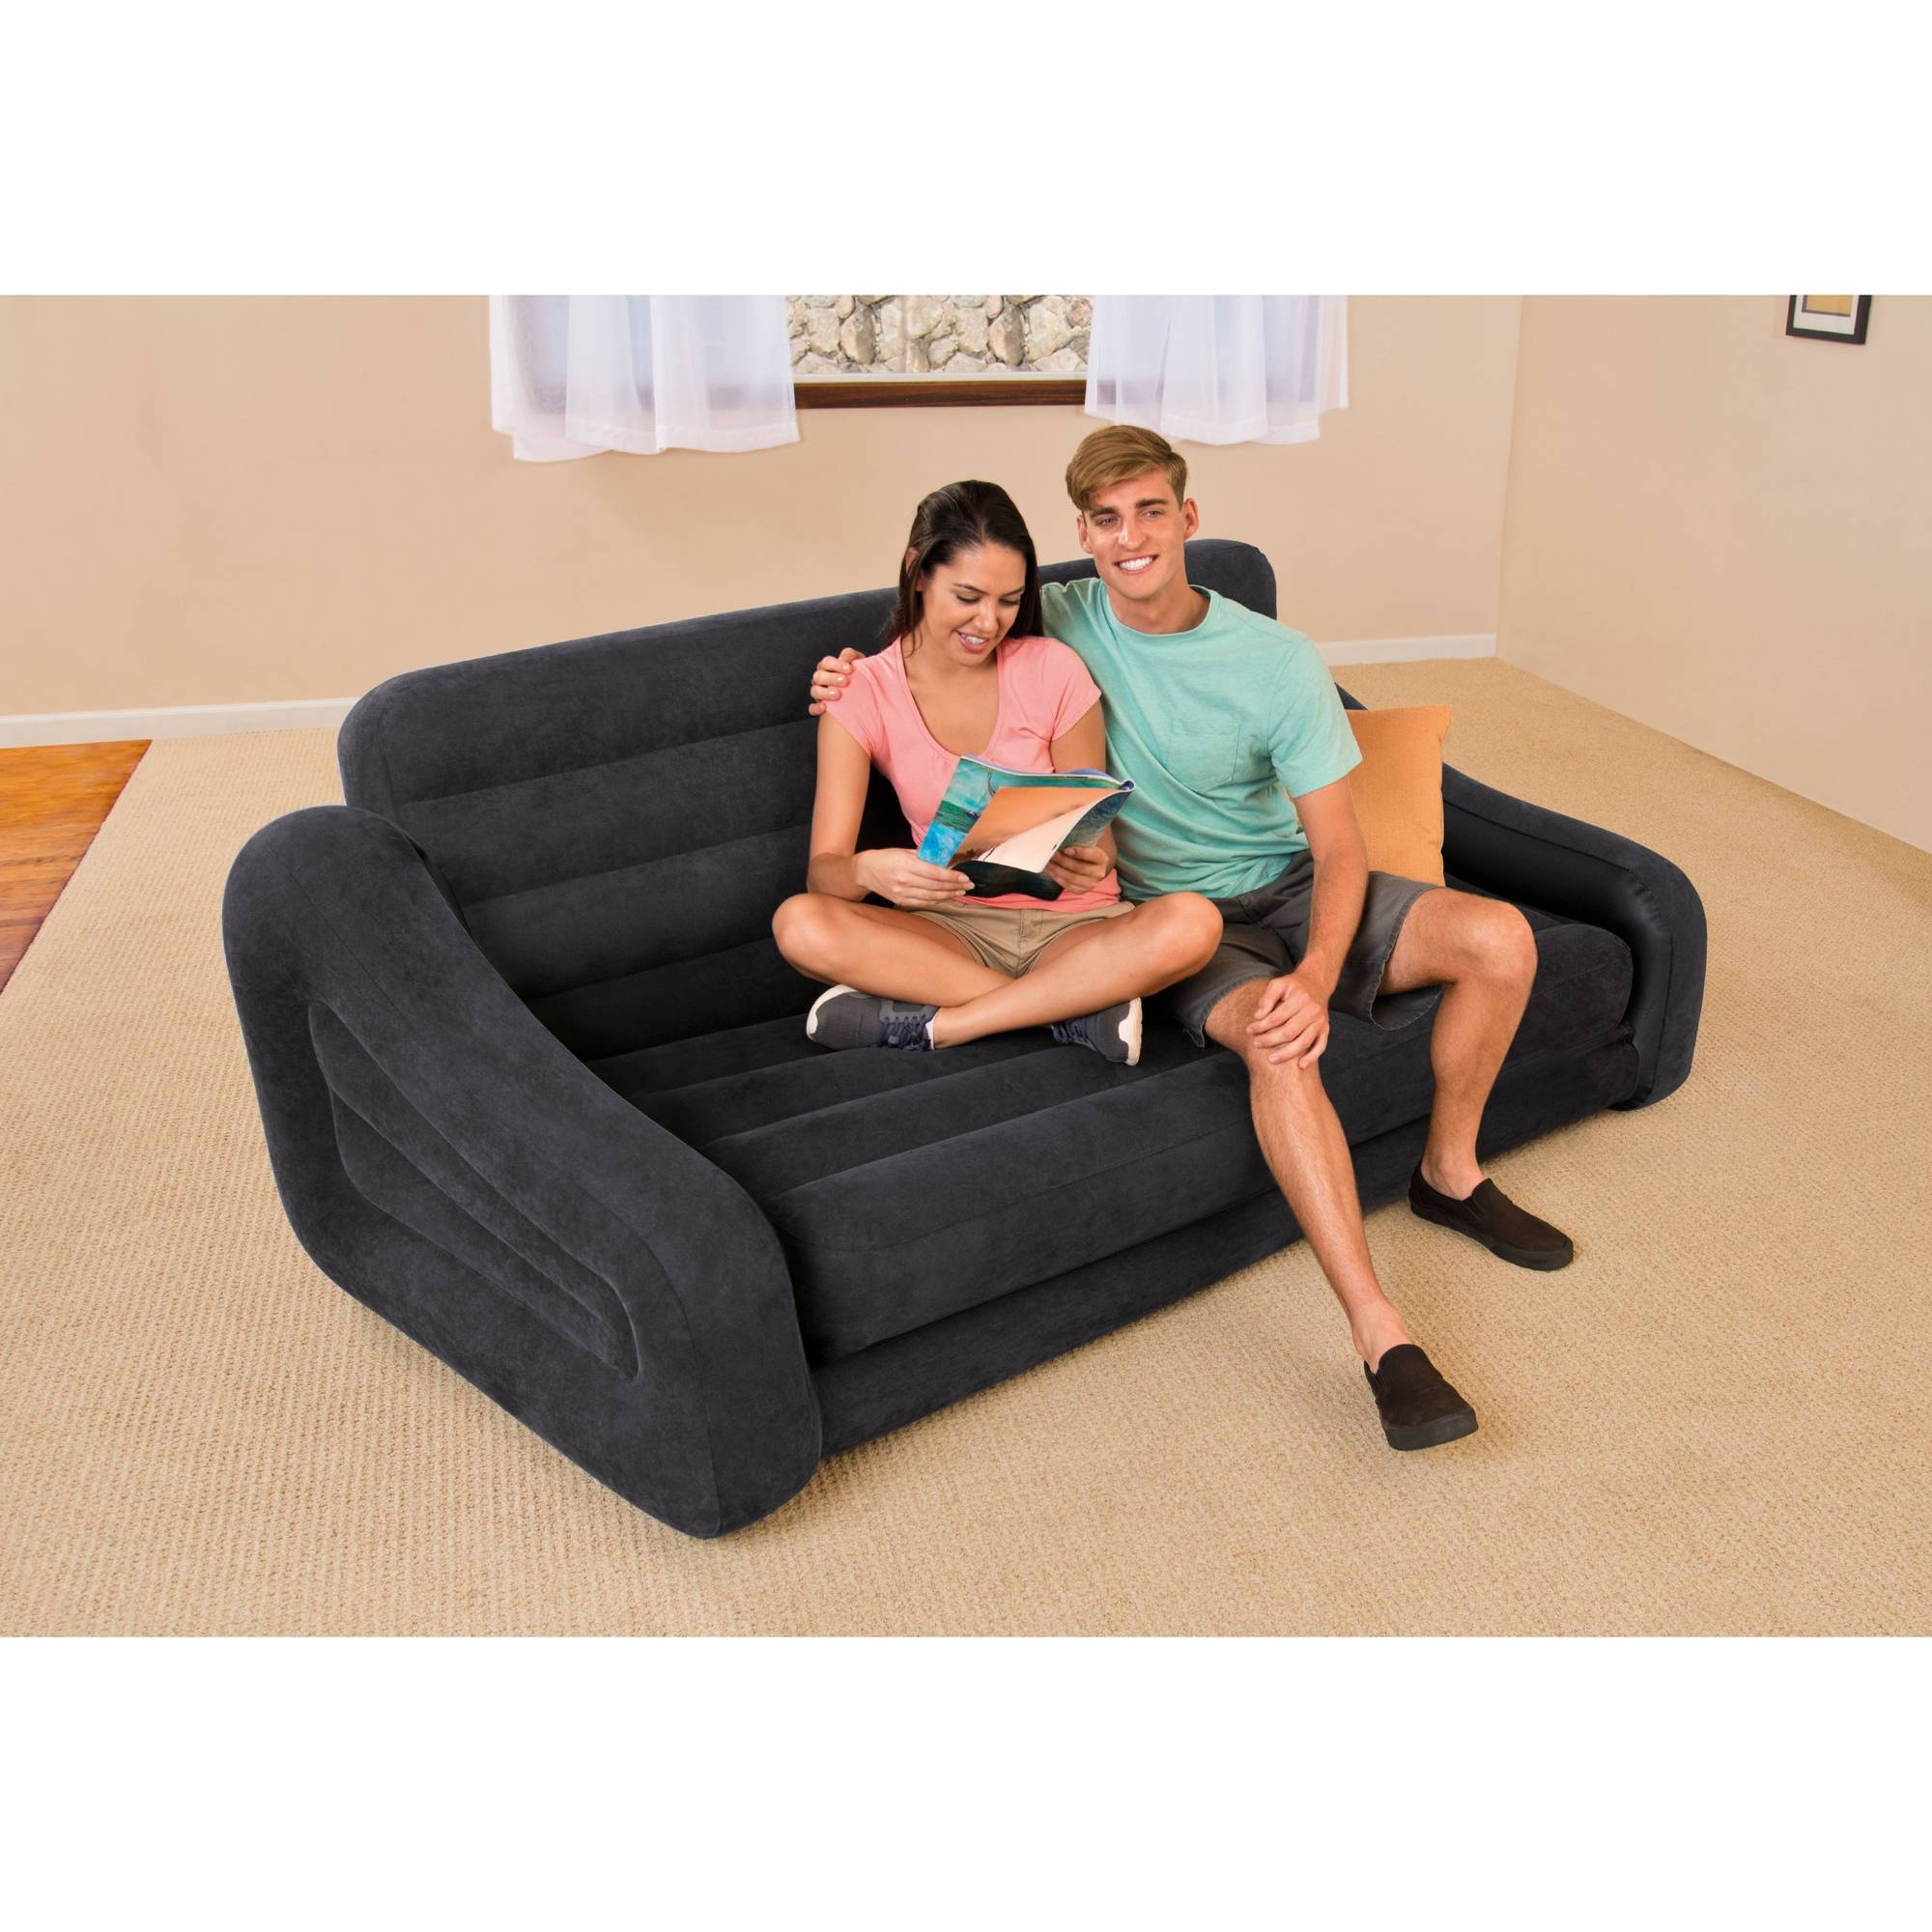 Intex Queen Inflatable Pull Out Sofa Bed – Walmart With Intex Inflatable Sofas (View 8 of 15)